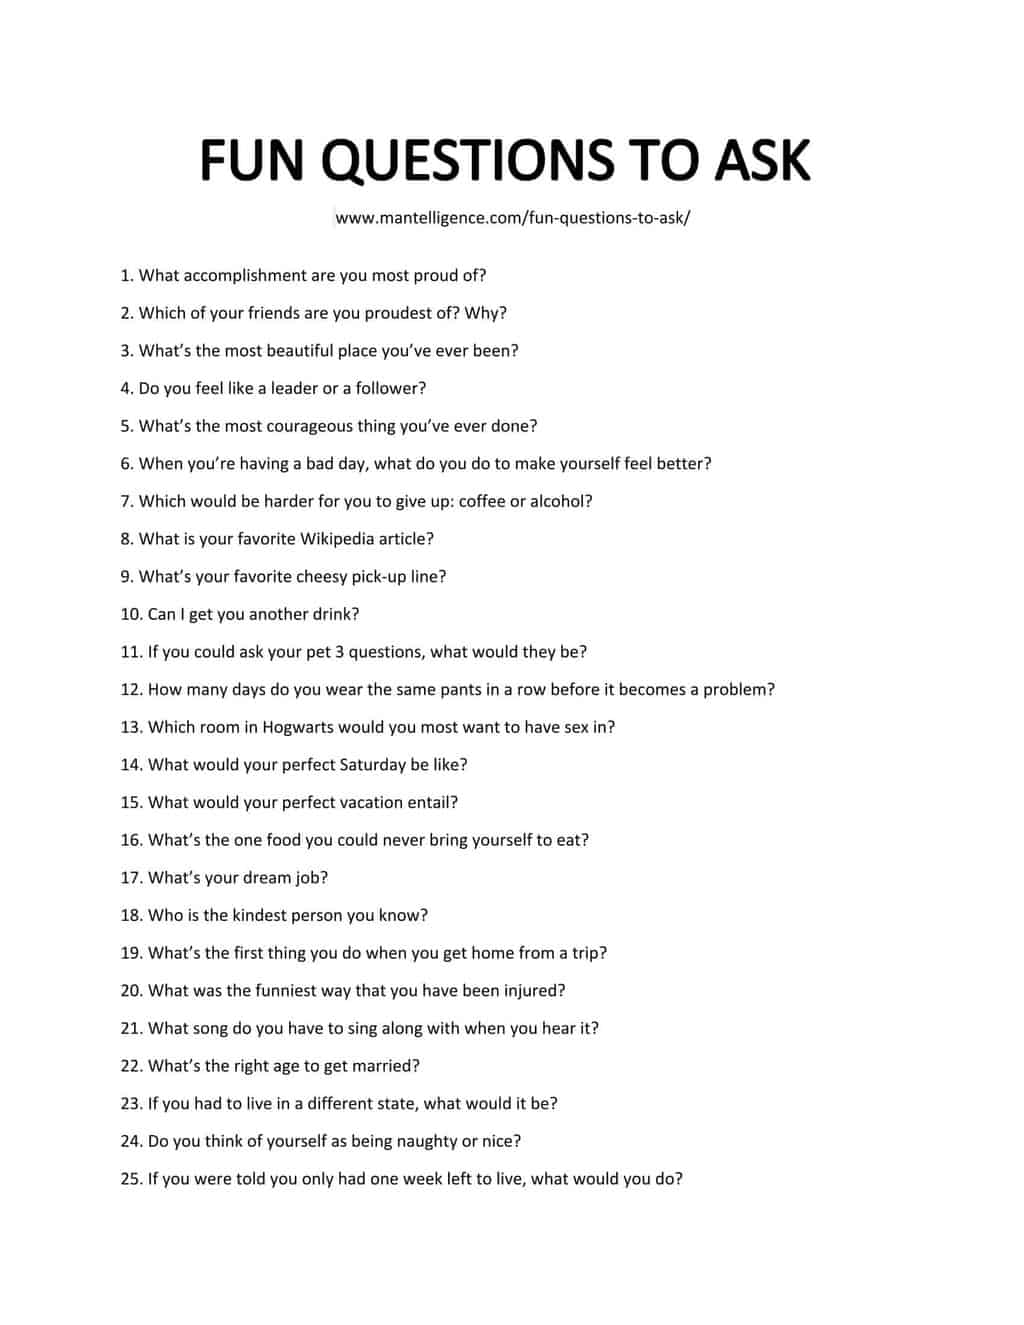 List of Fun Questions to Ask